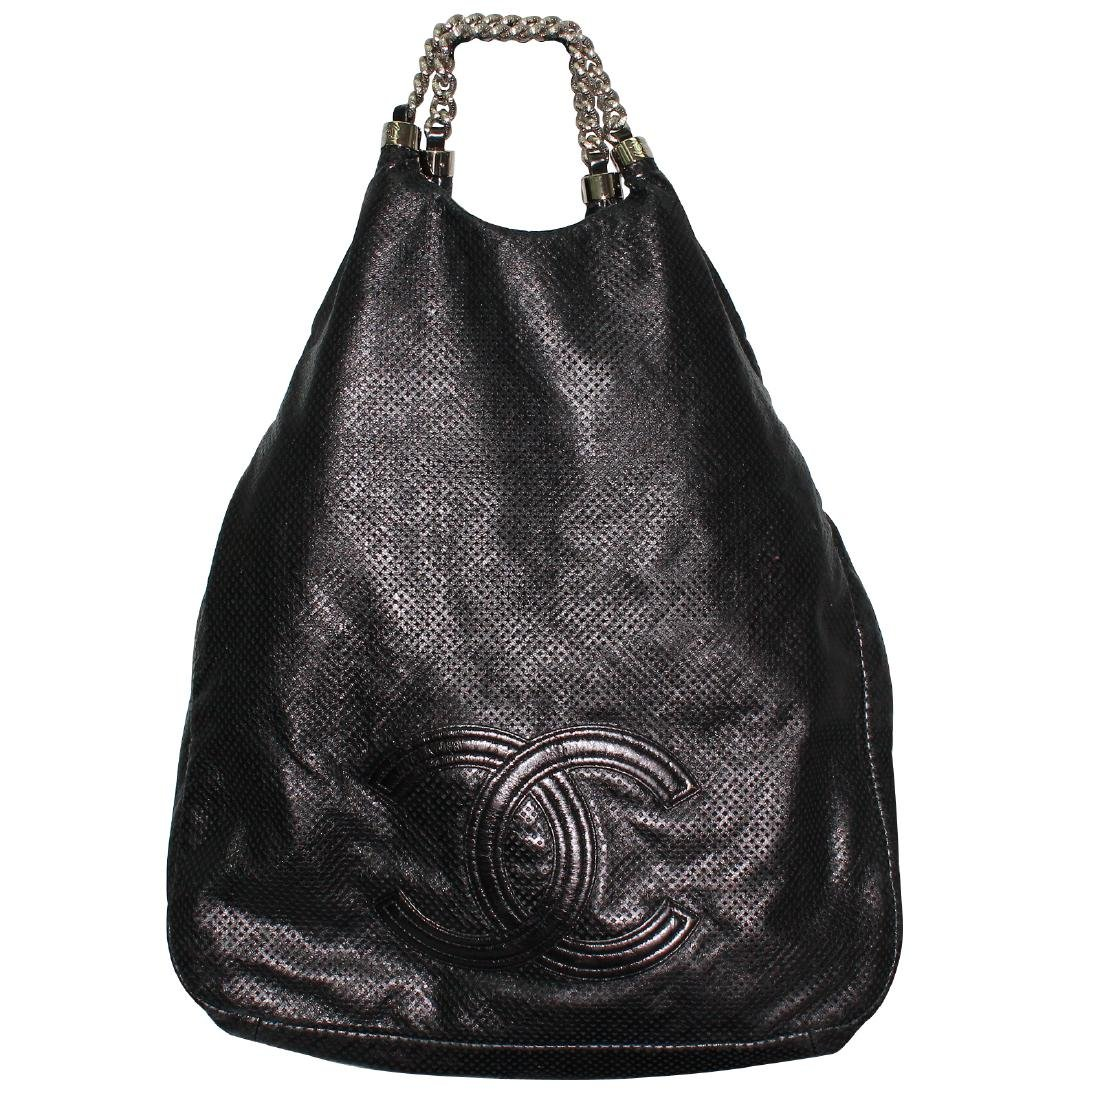 Chanel Rodeo XL Hobo Black Perforated Leather Tote Bag